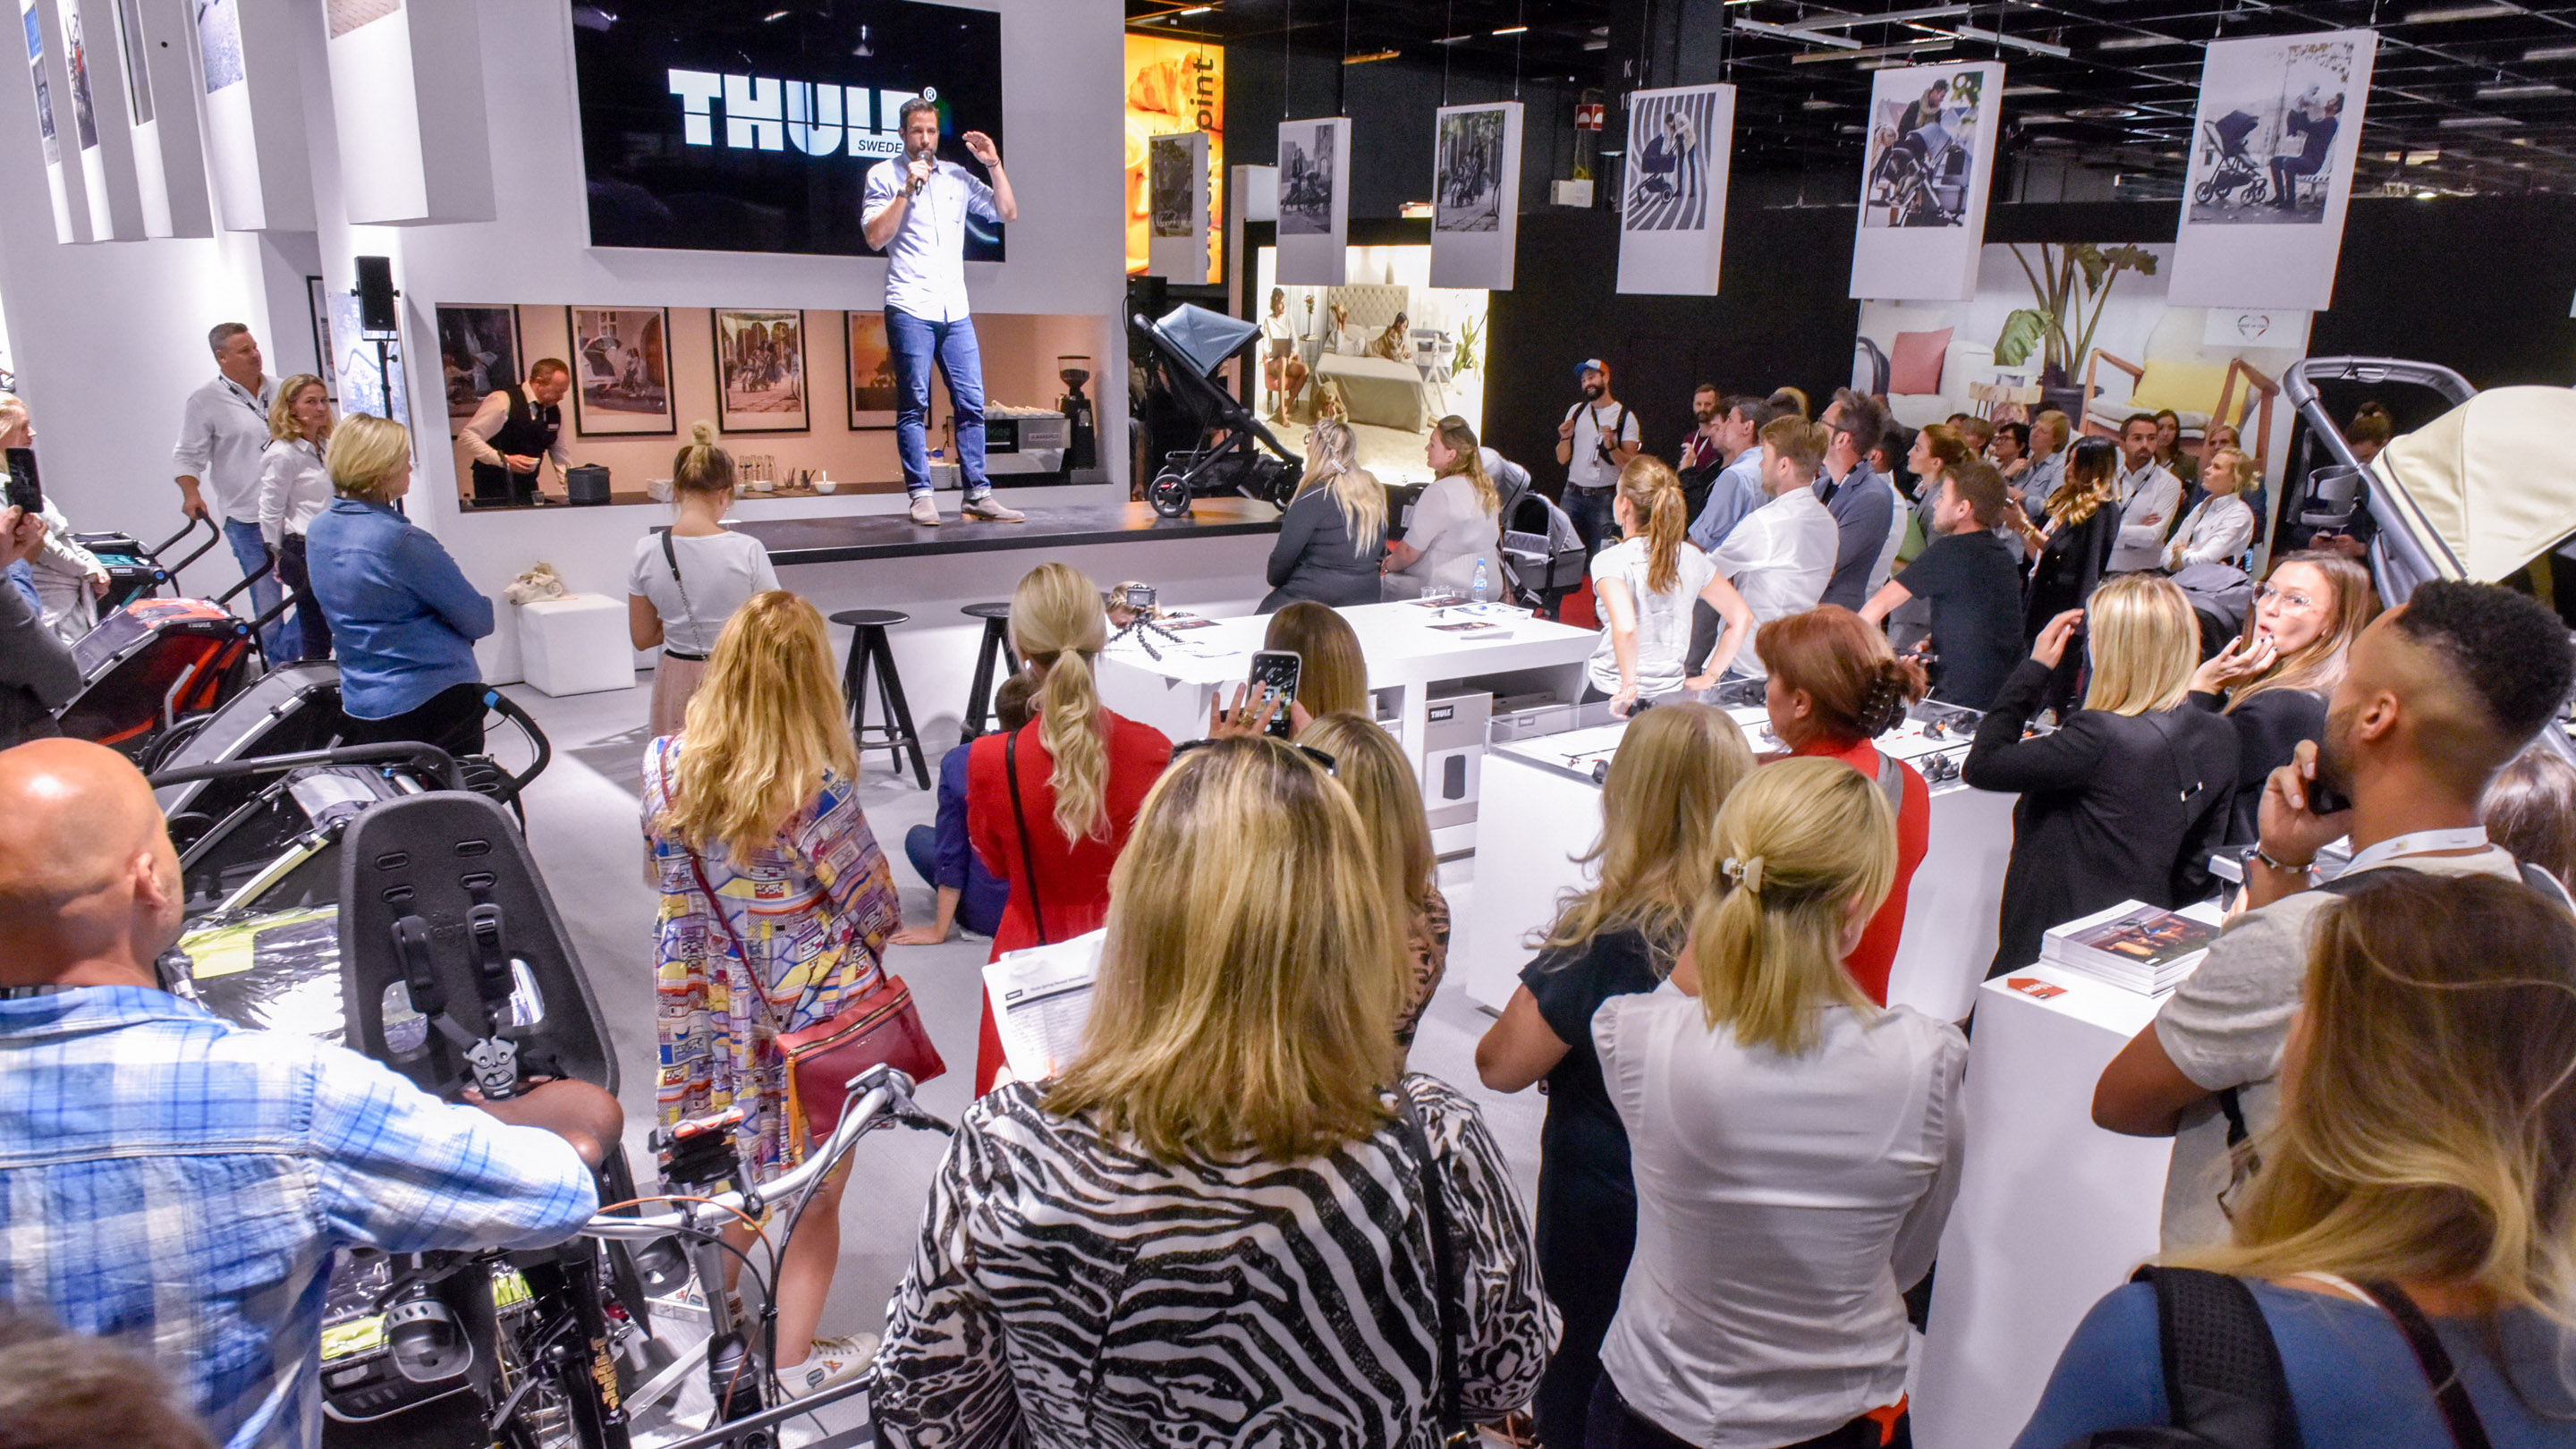 Stand: Thule, Global Launch, Halle 10.2, Kind + Jugend 2019